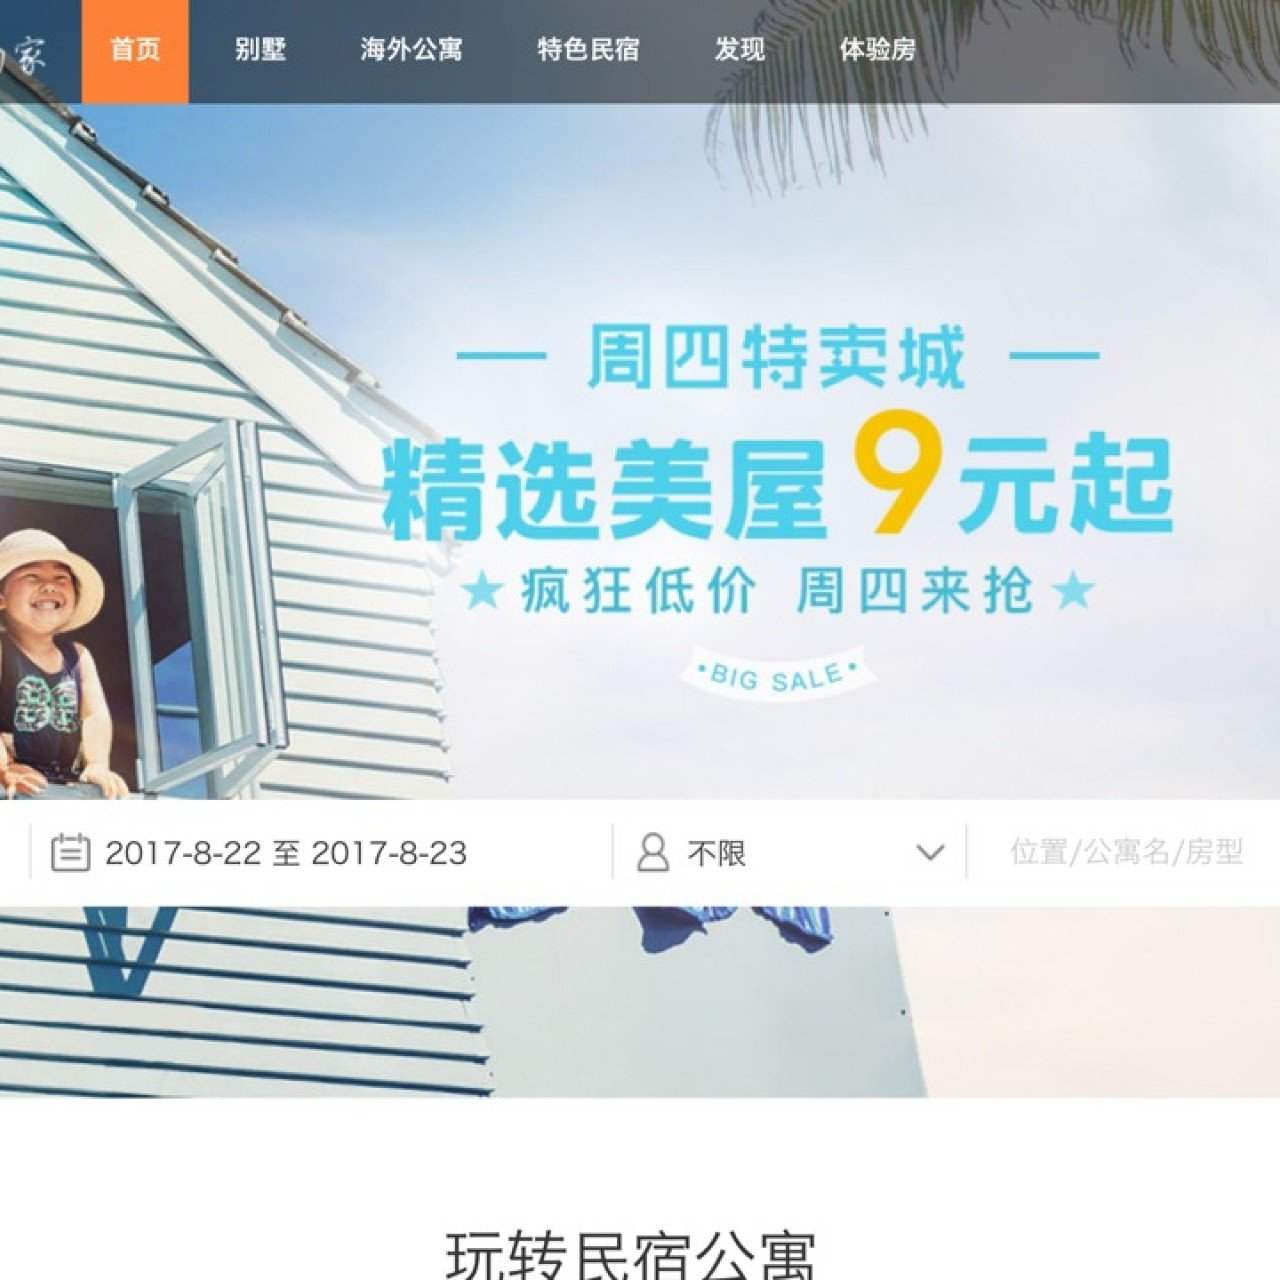 Top Chinese home-rental site Tujia's valuation surpasses US